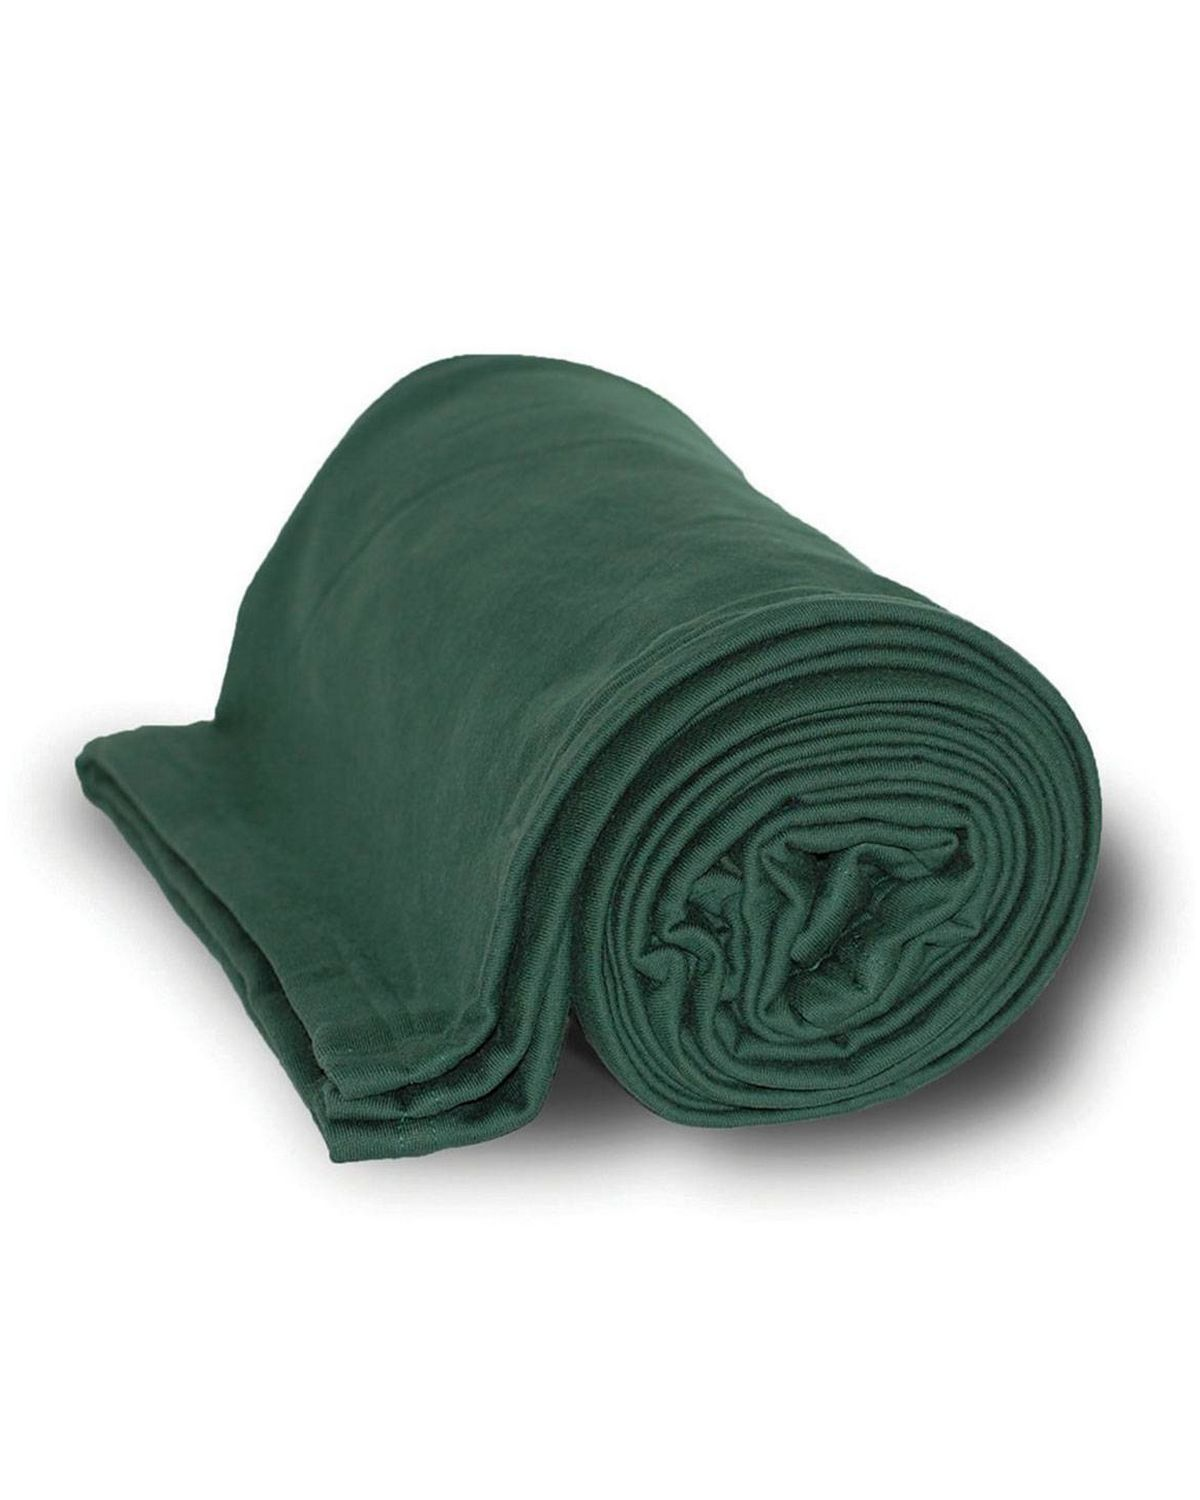 Alpine Fleece 8710 Sweatshirt Blanket Throw